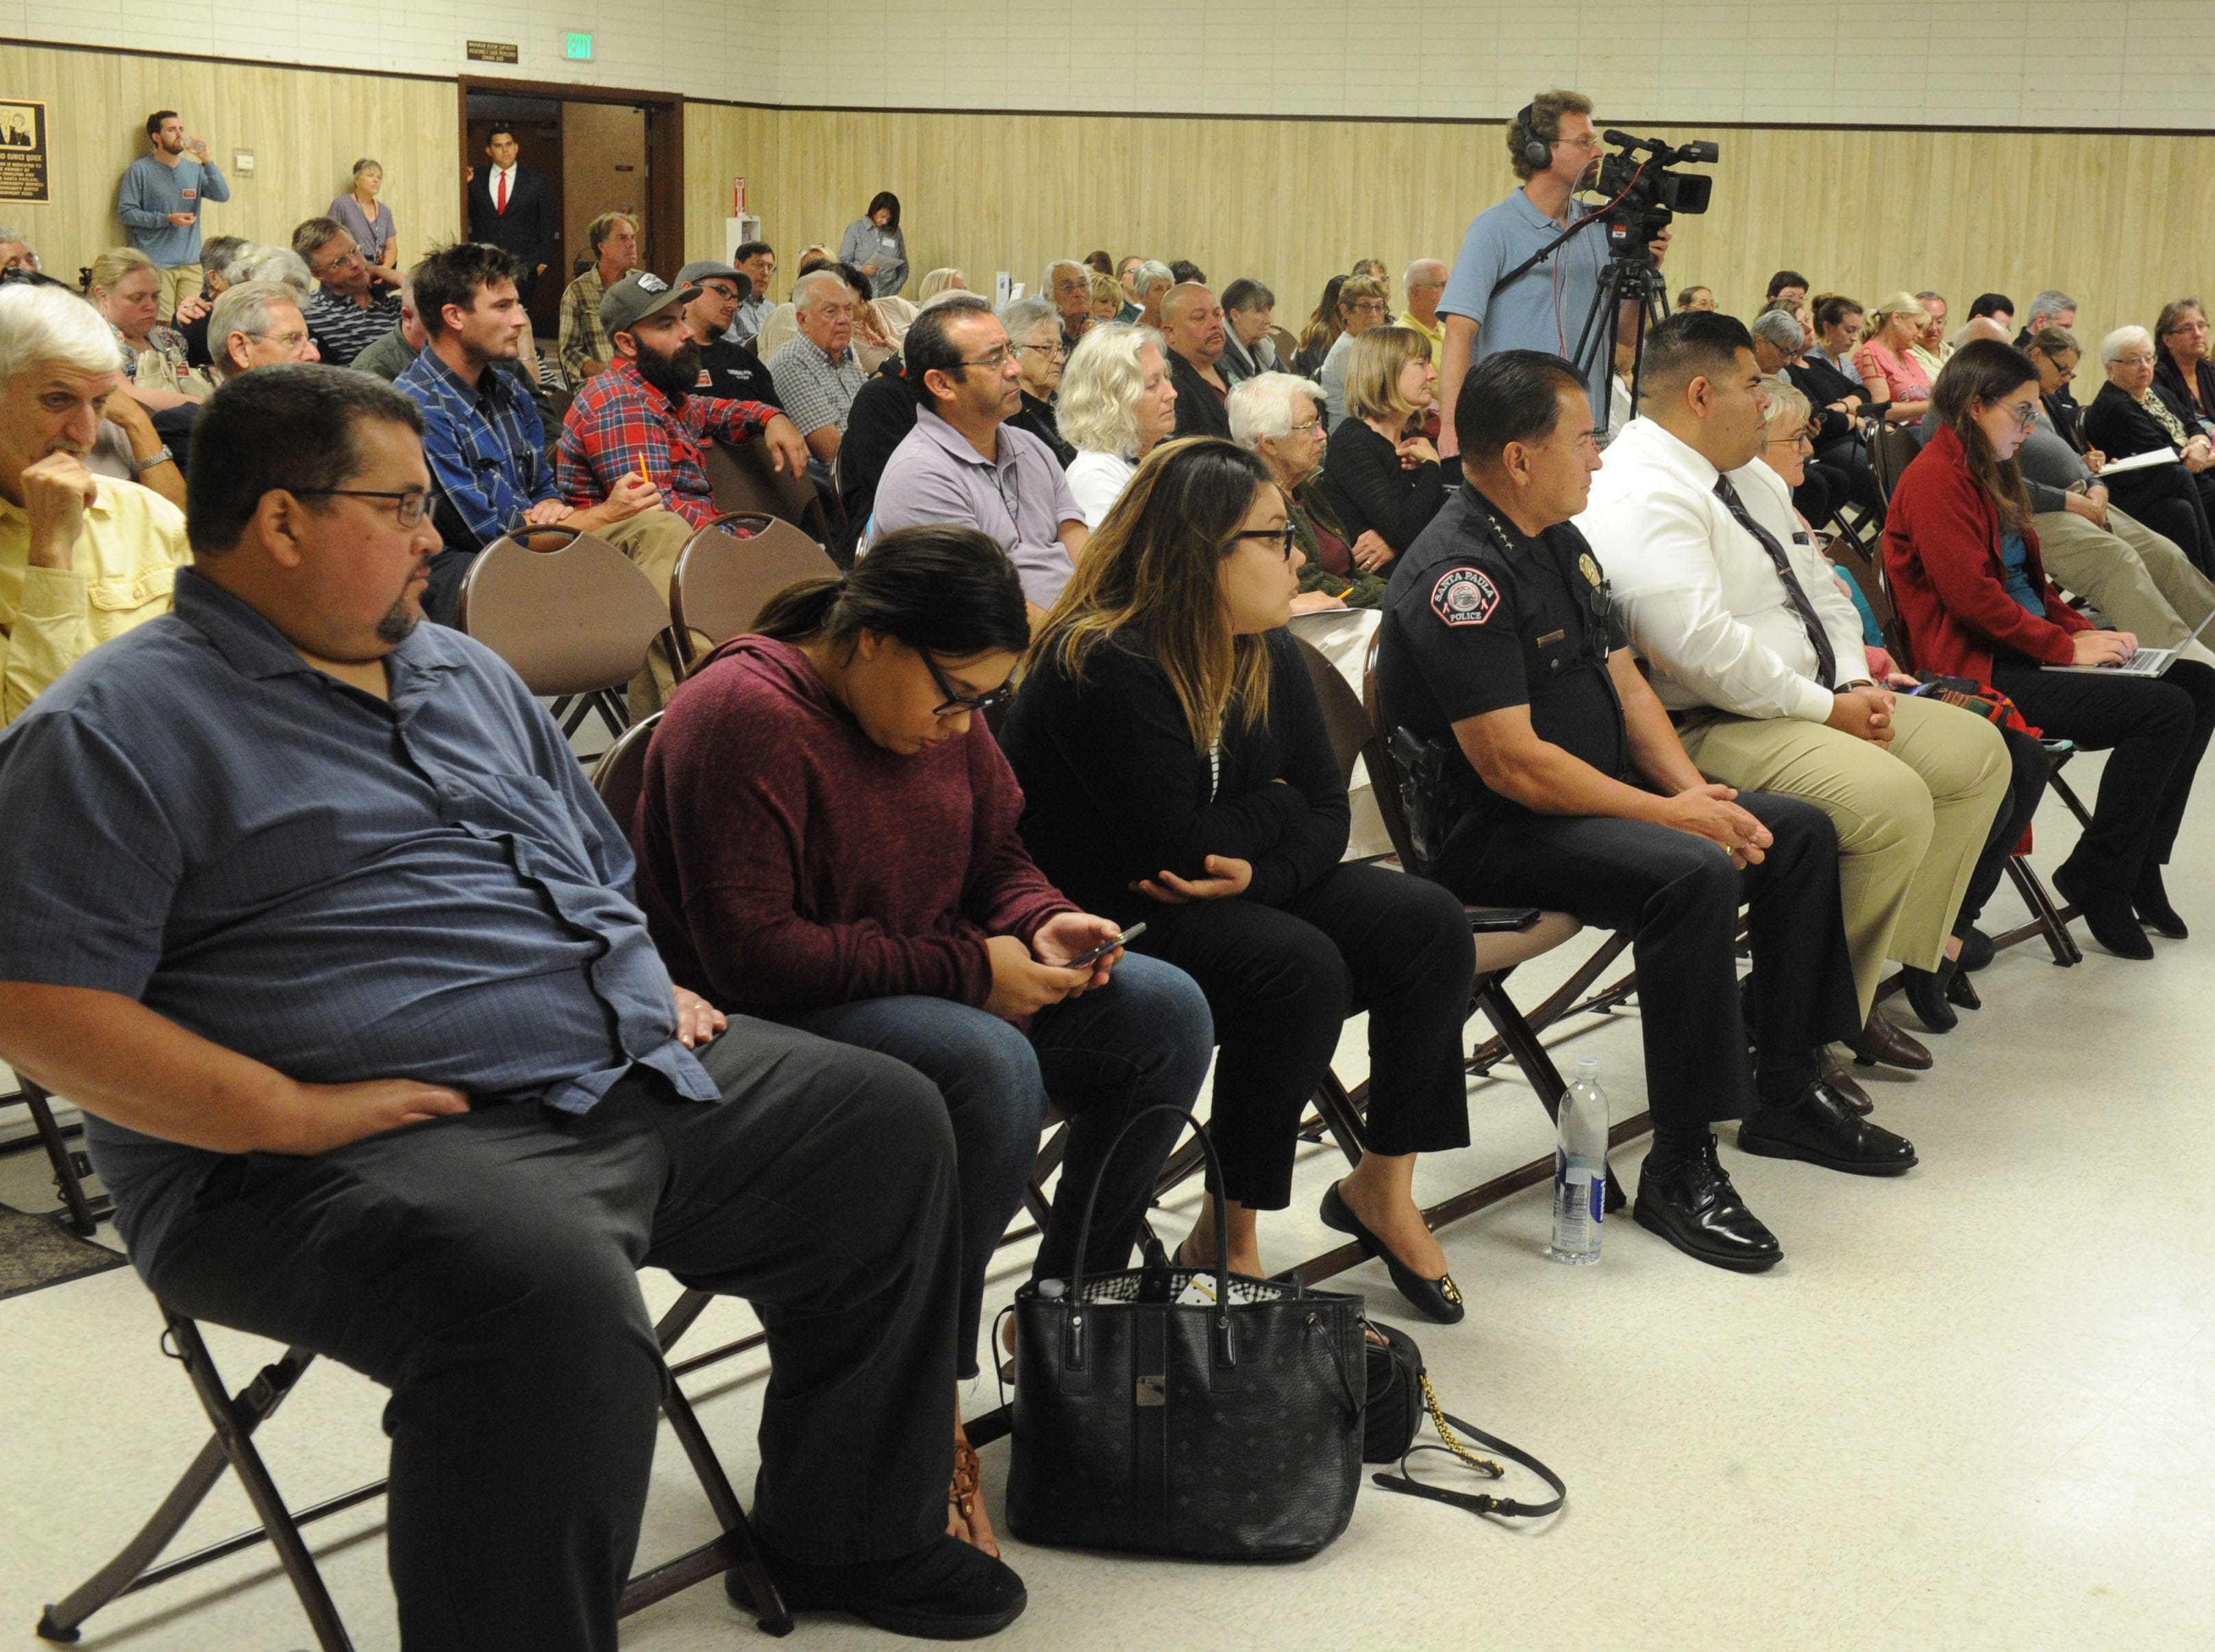 A forum for candidates running for Santa Paula City Council draws a crowd.